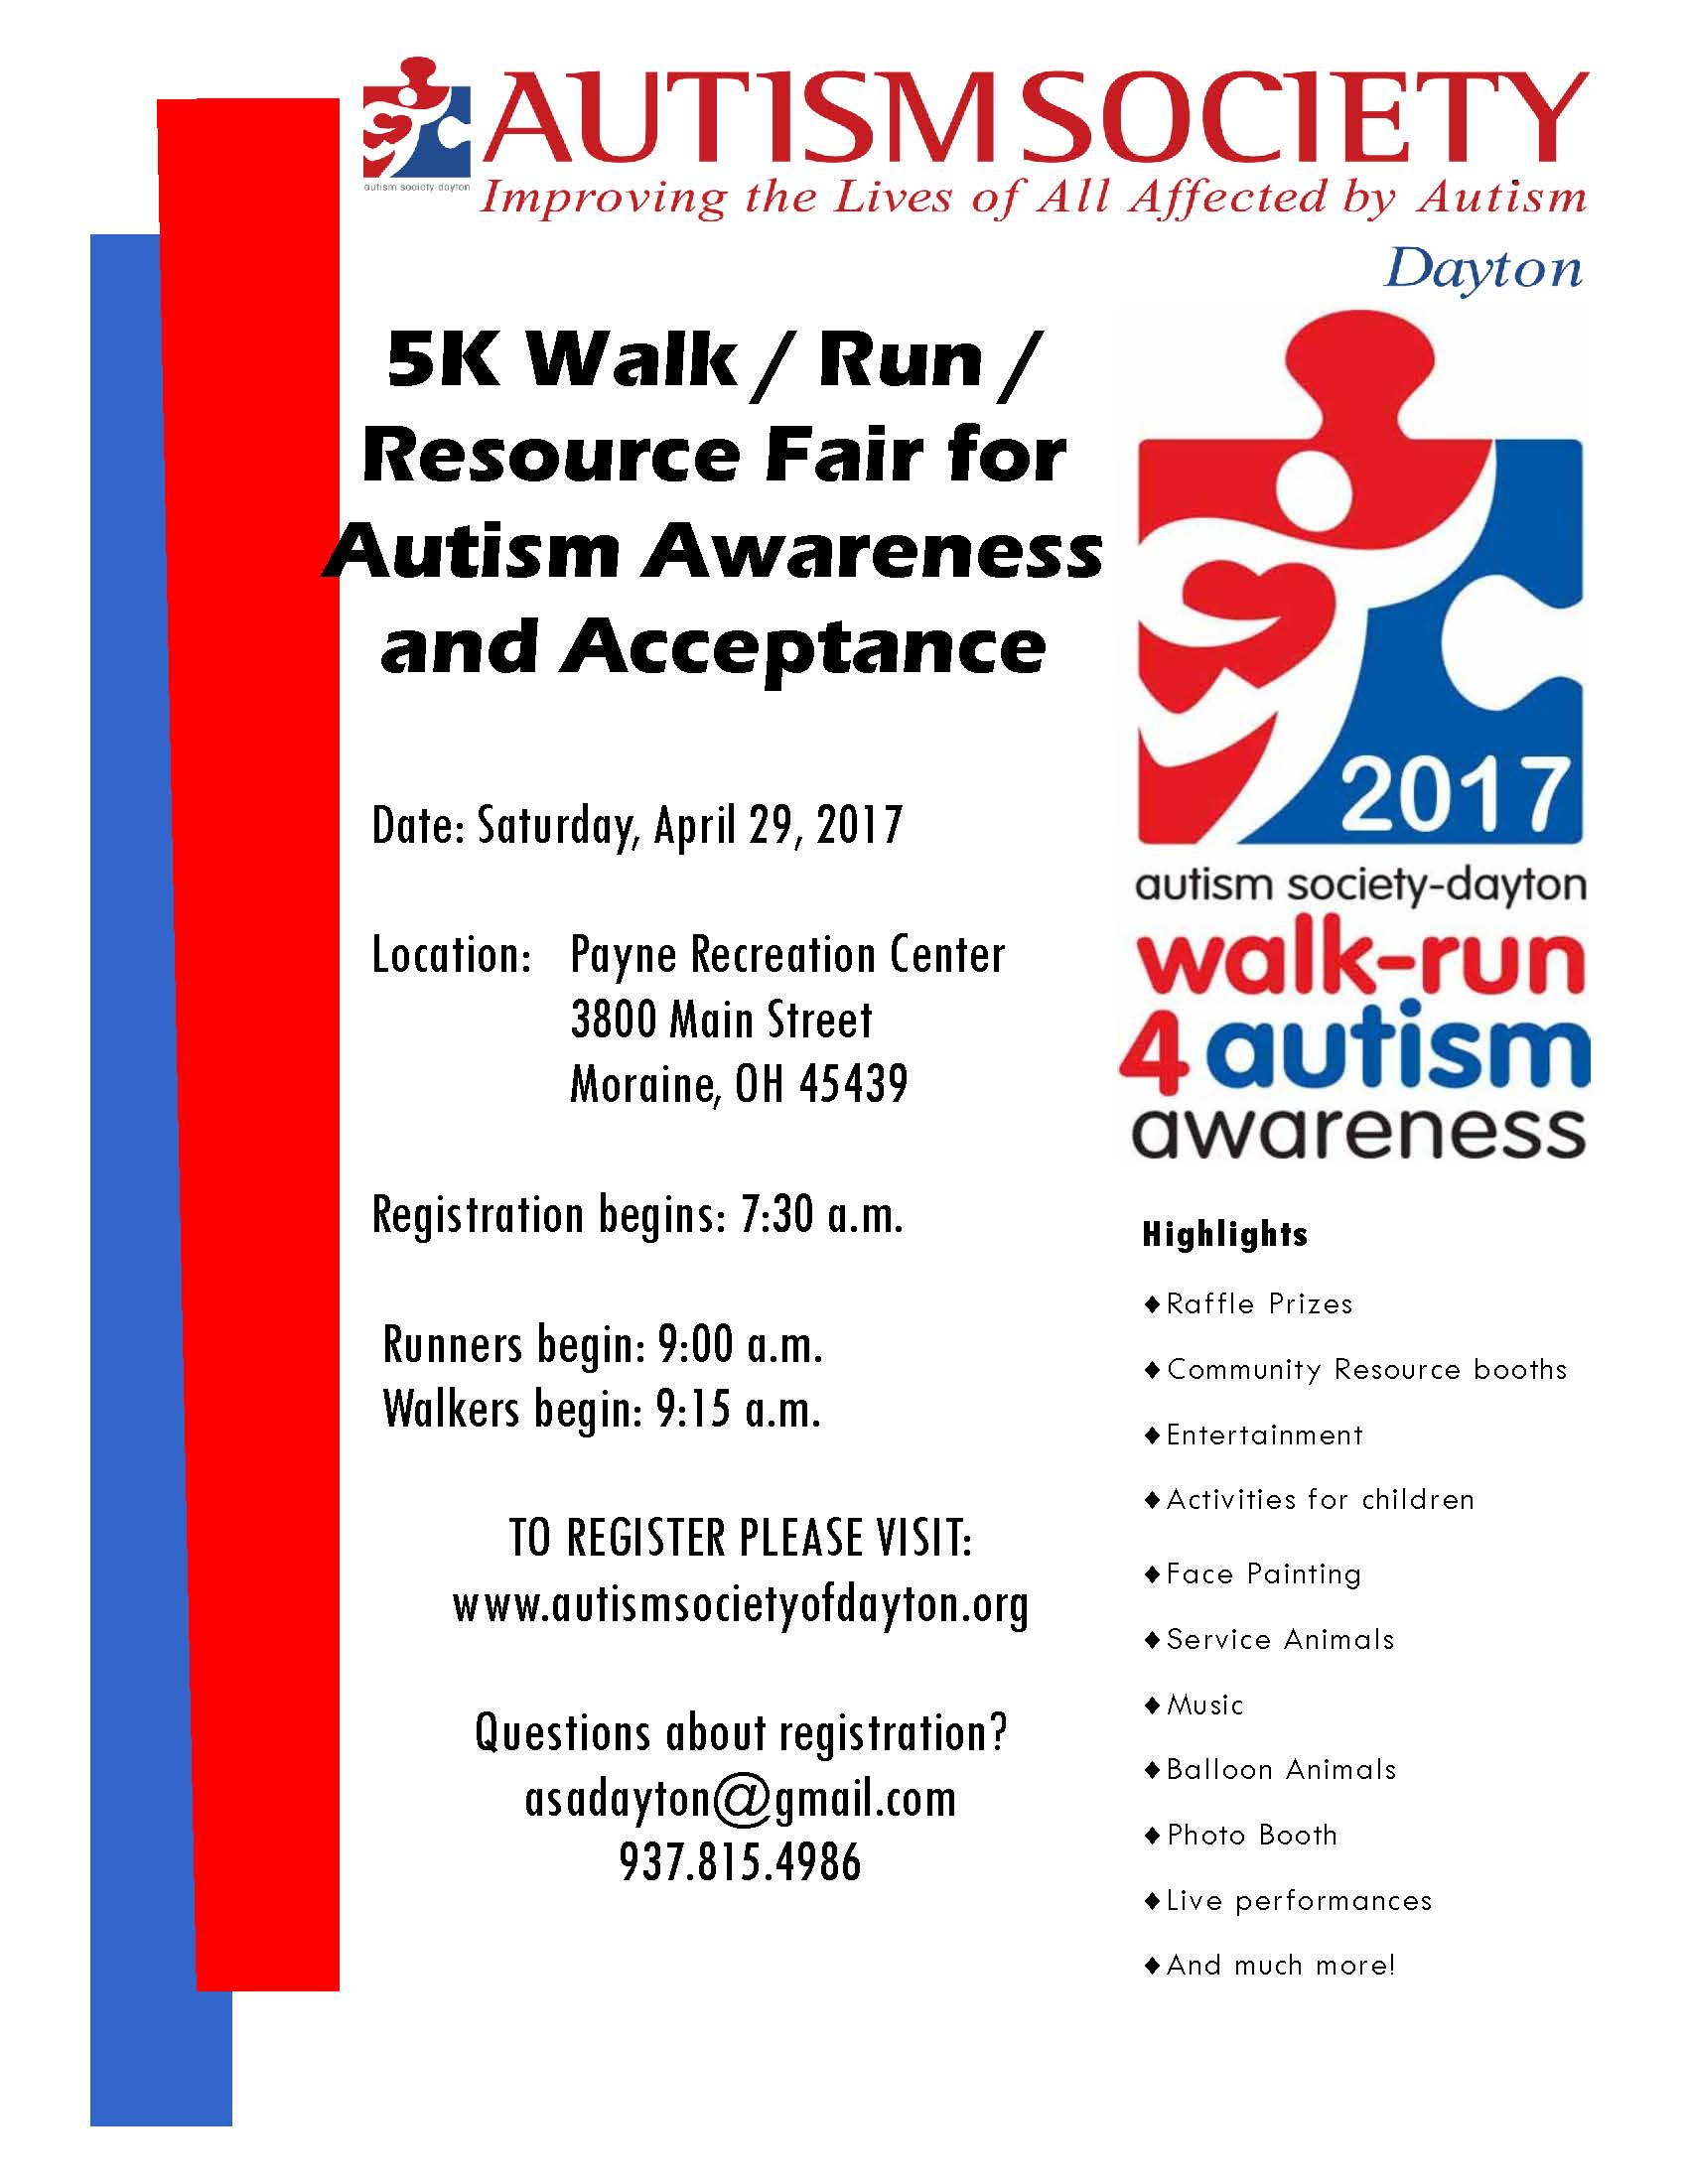 ASA Dayton 5K Run-Walk Flyer 2017.jpg